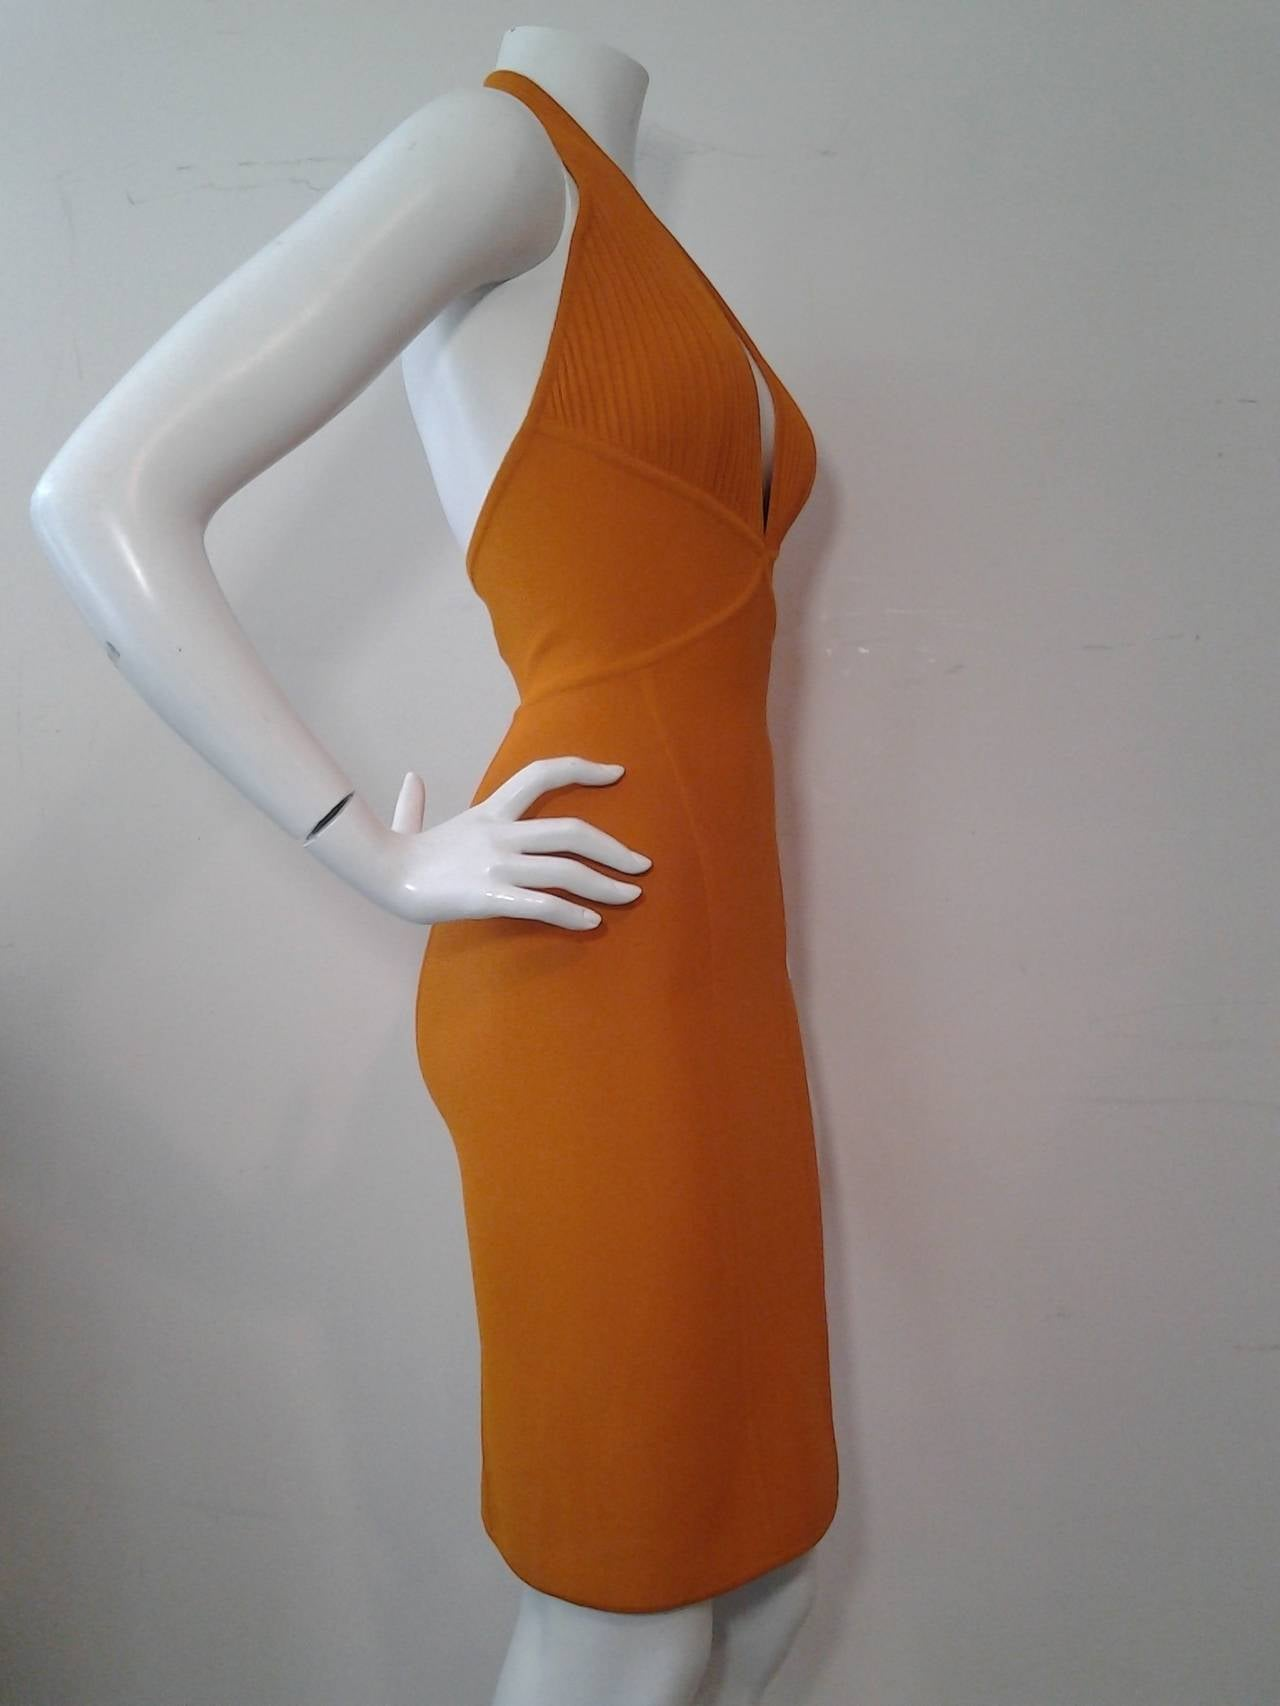 Herve Leger Orange Rayon Knit Halter Dress In New never worn Condition For Sale In San Francisco, CA